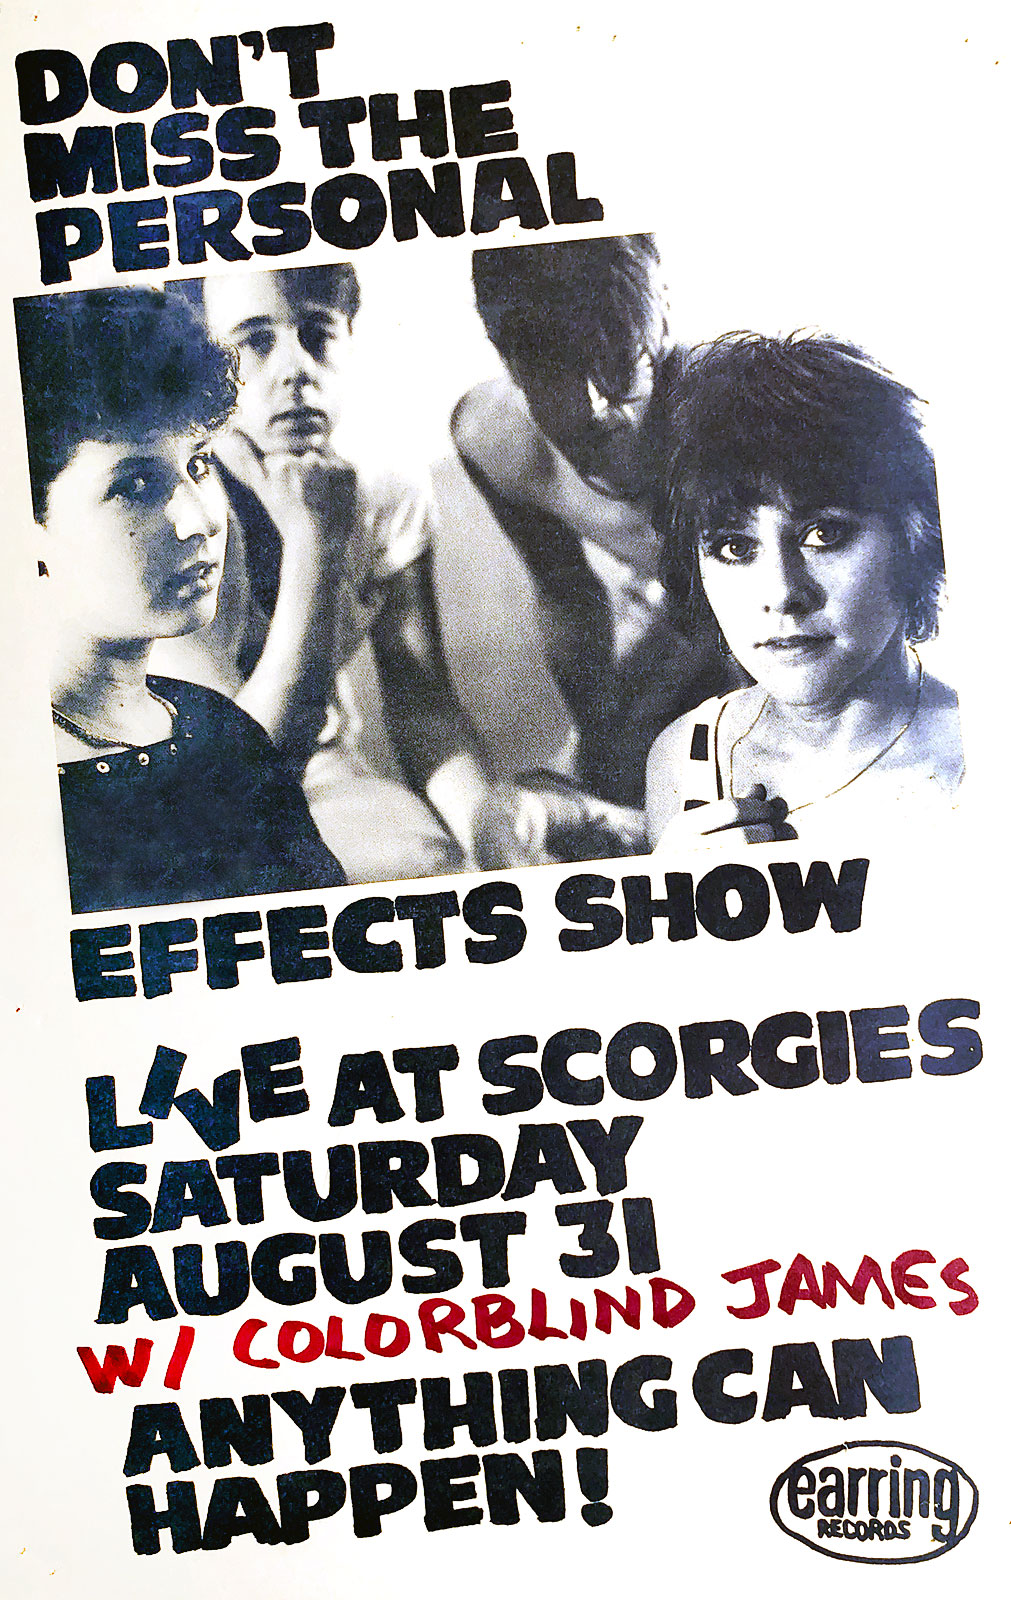 Poster for Personal Effects with Colorblind James Experience at Scorgie's in Rochester, New York on 08.31.1985. Colorblind James must have been a late addition to the bill as I wrote their name on each poster.